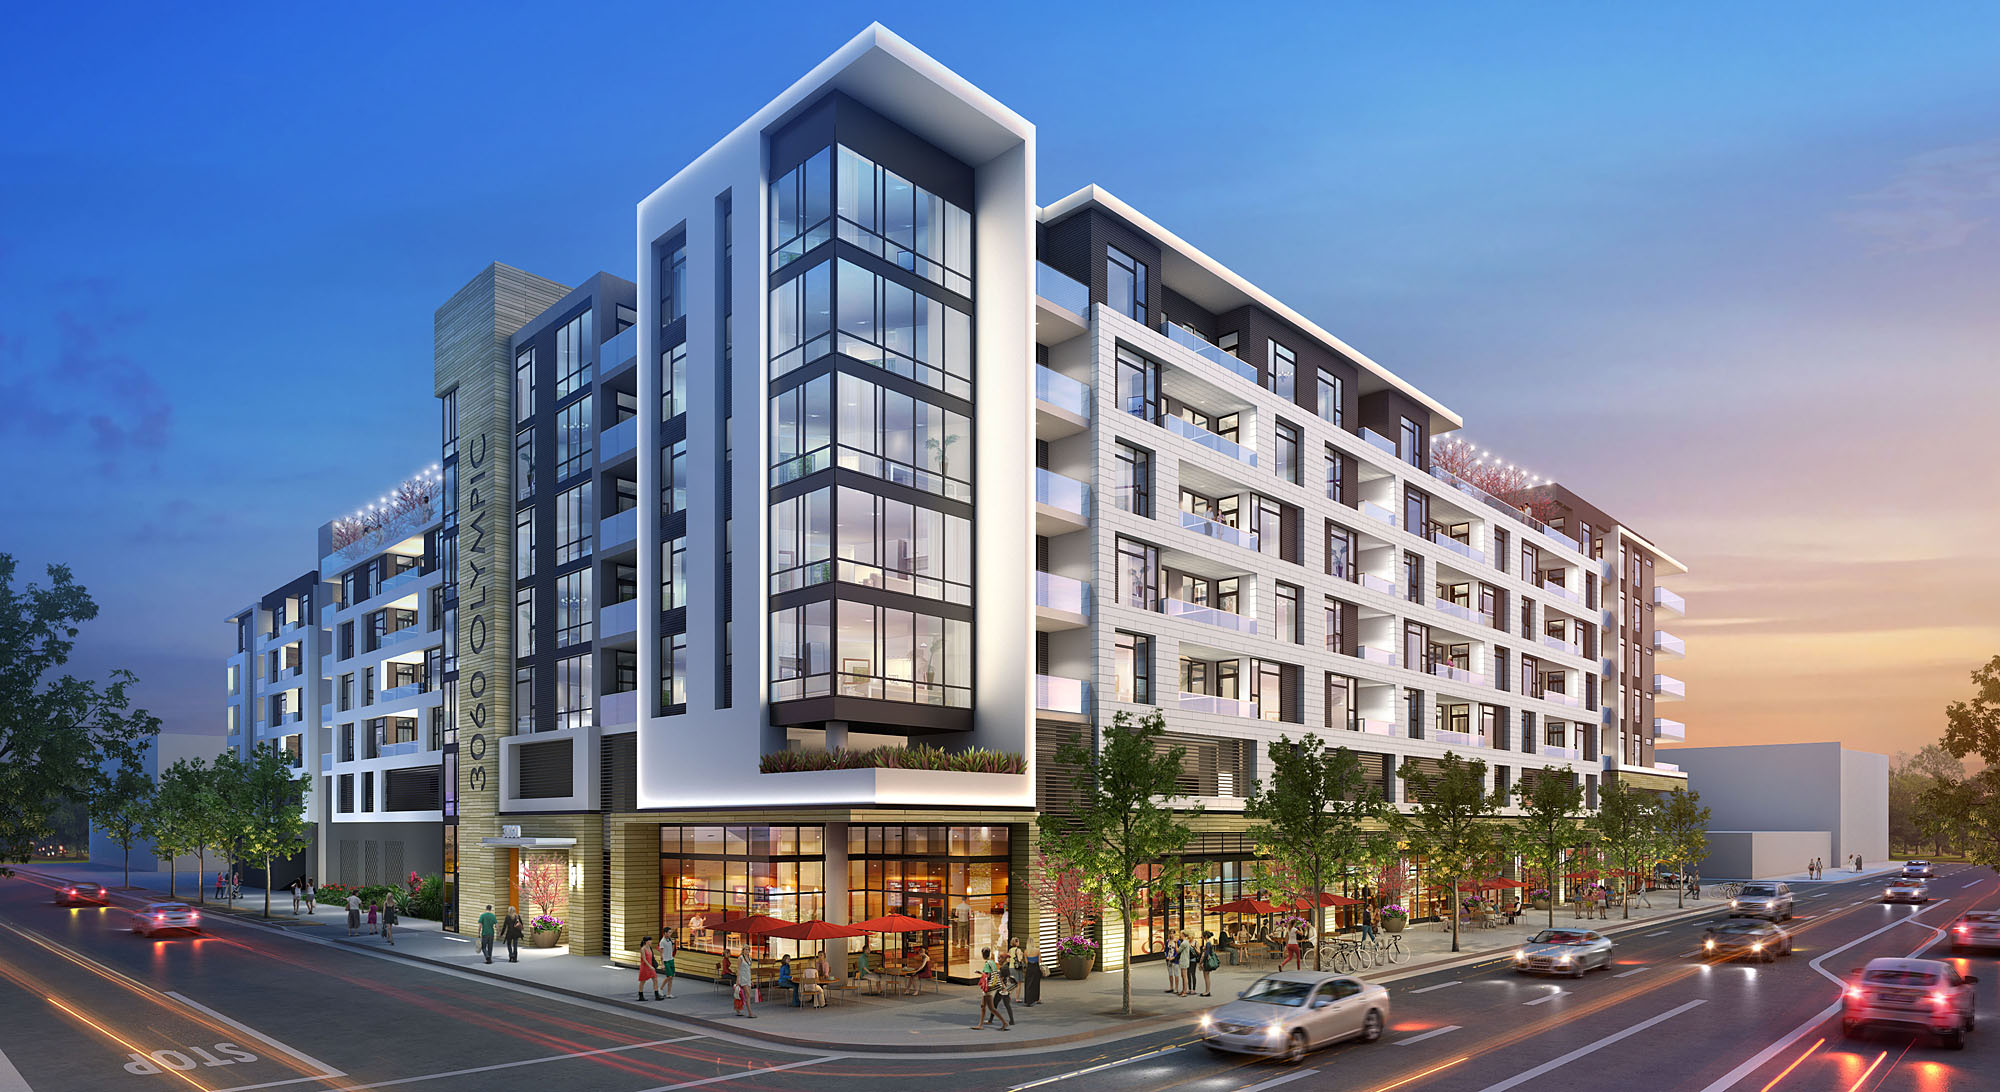 3060 Olympic Apartments And Retail To Rise On Olympic